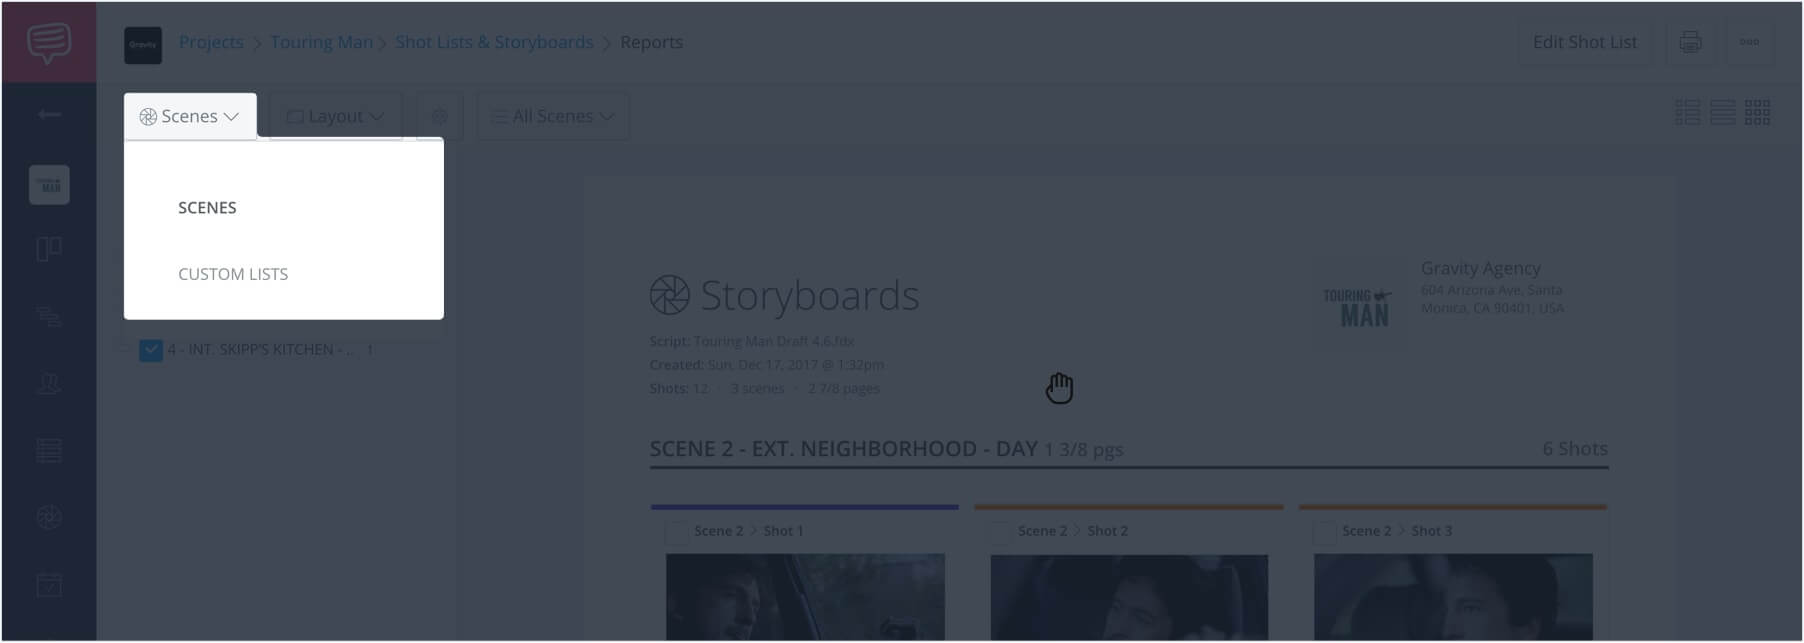 How to Make a Storyboard Online - StudioBinder Storyboard Creator - 20